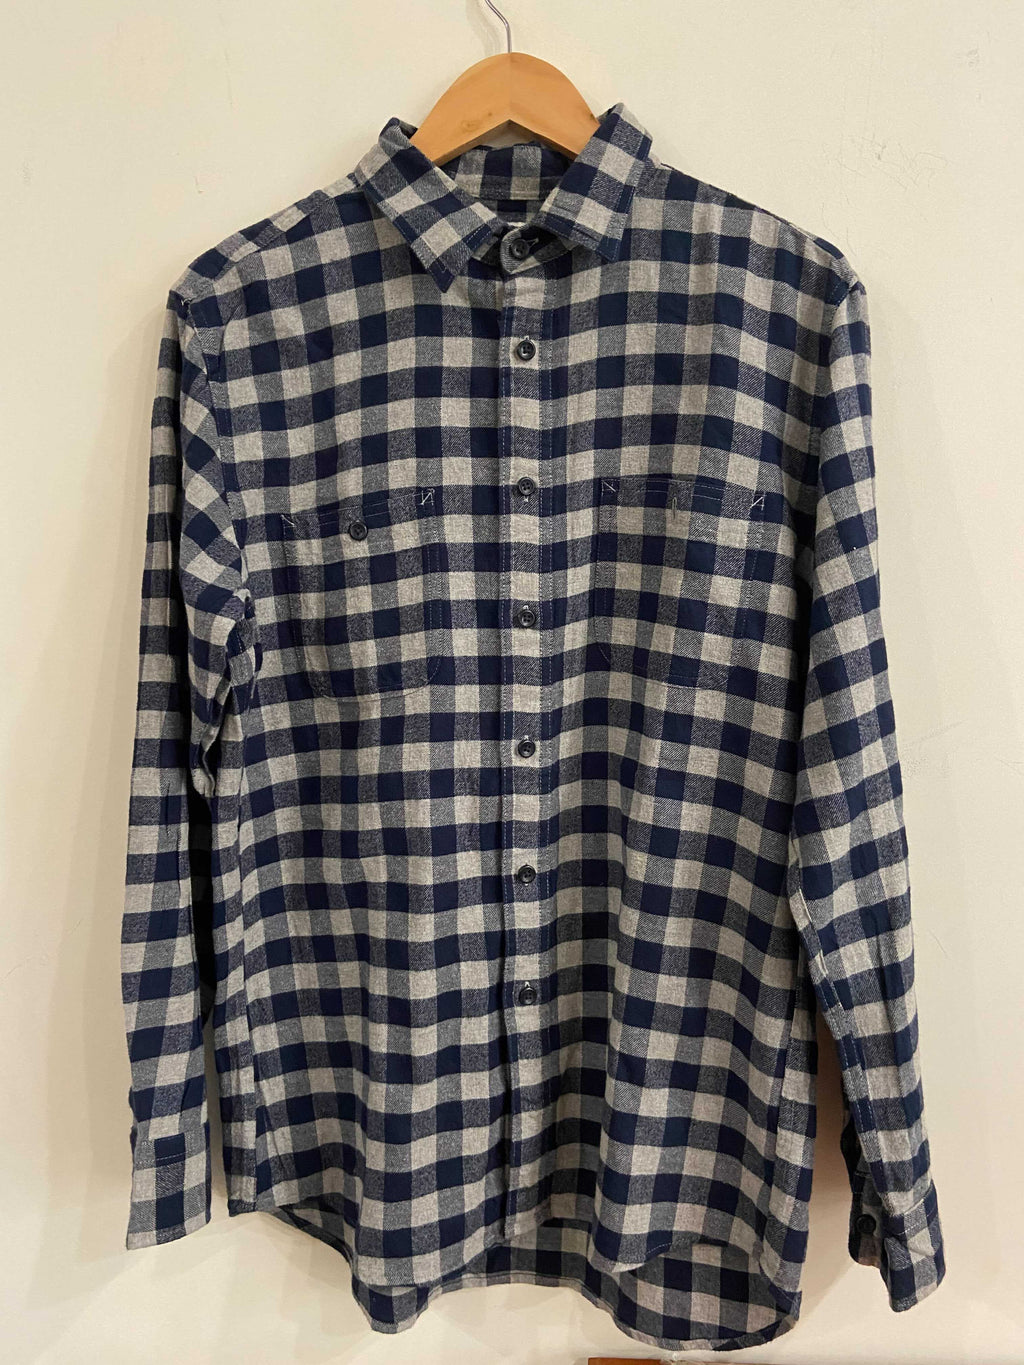 Uniqlo Checkered Flannel Shirt